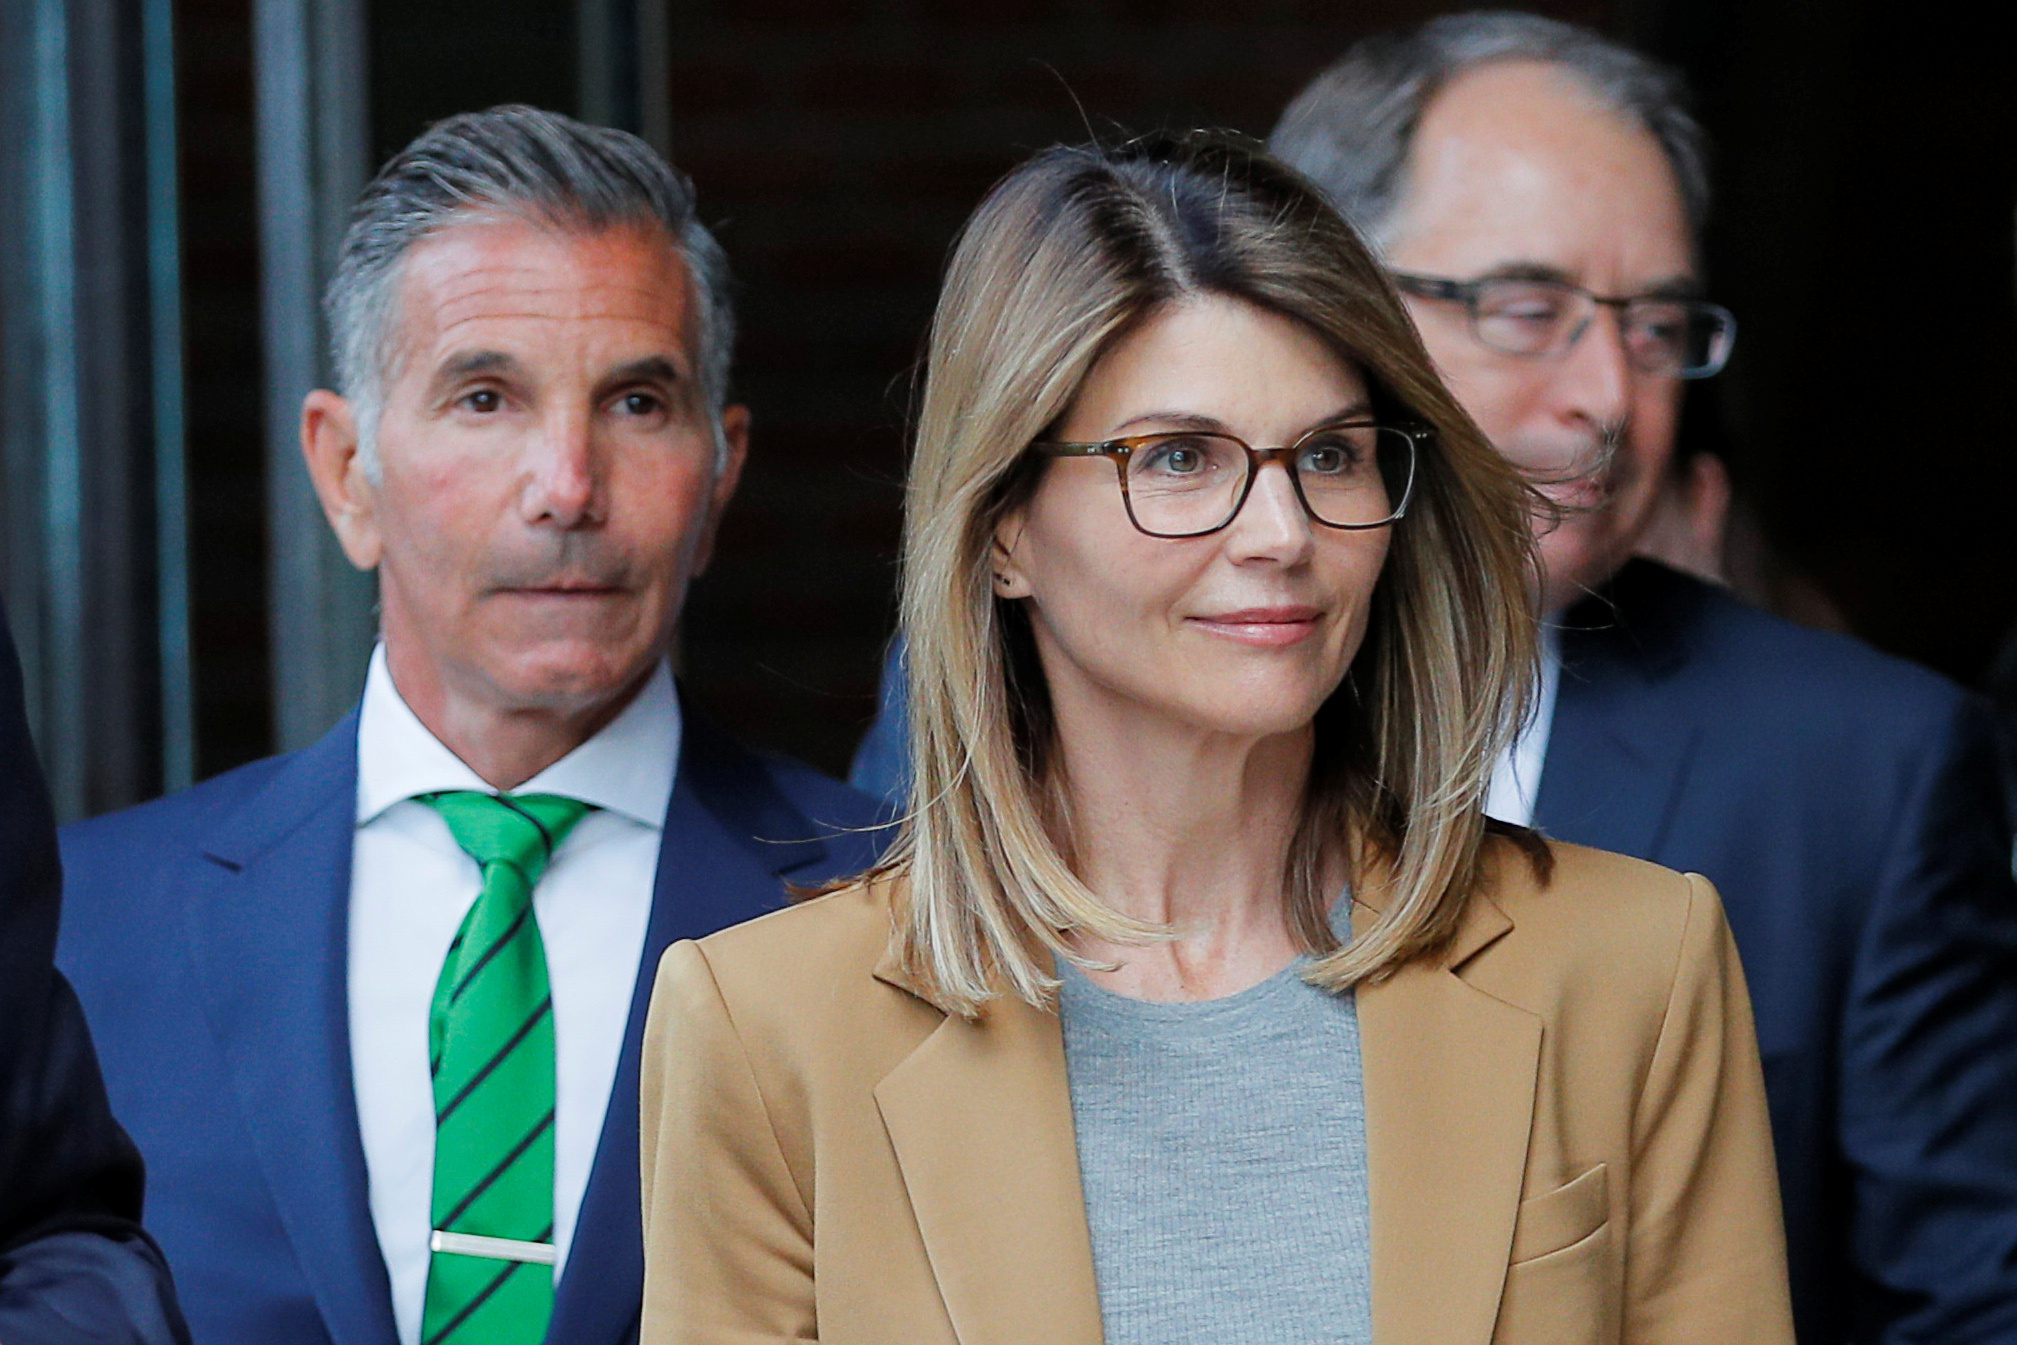 Actor Lori Loughlin, and her husband, fashion designer Mossimo Giannulli, leave the federal courthouse after facing charges in a nationwide college admissions cheating scheme, in Boston, Massachusetts, U.S., April 3, 2019. REUTERS/Brian Snyder